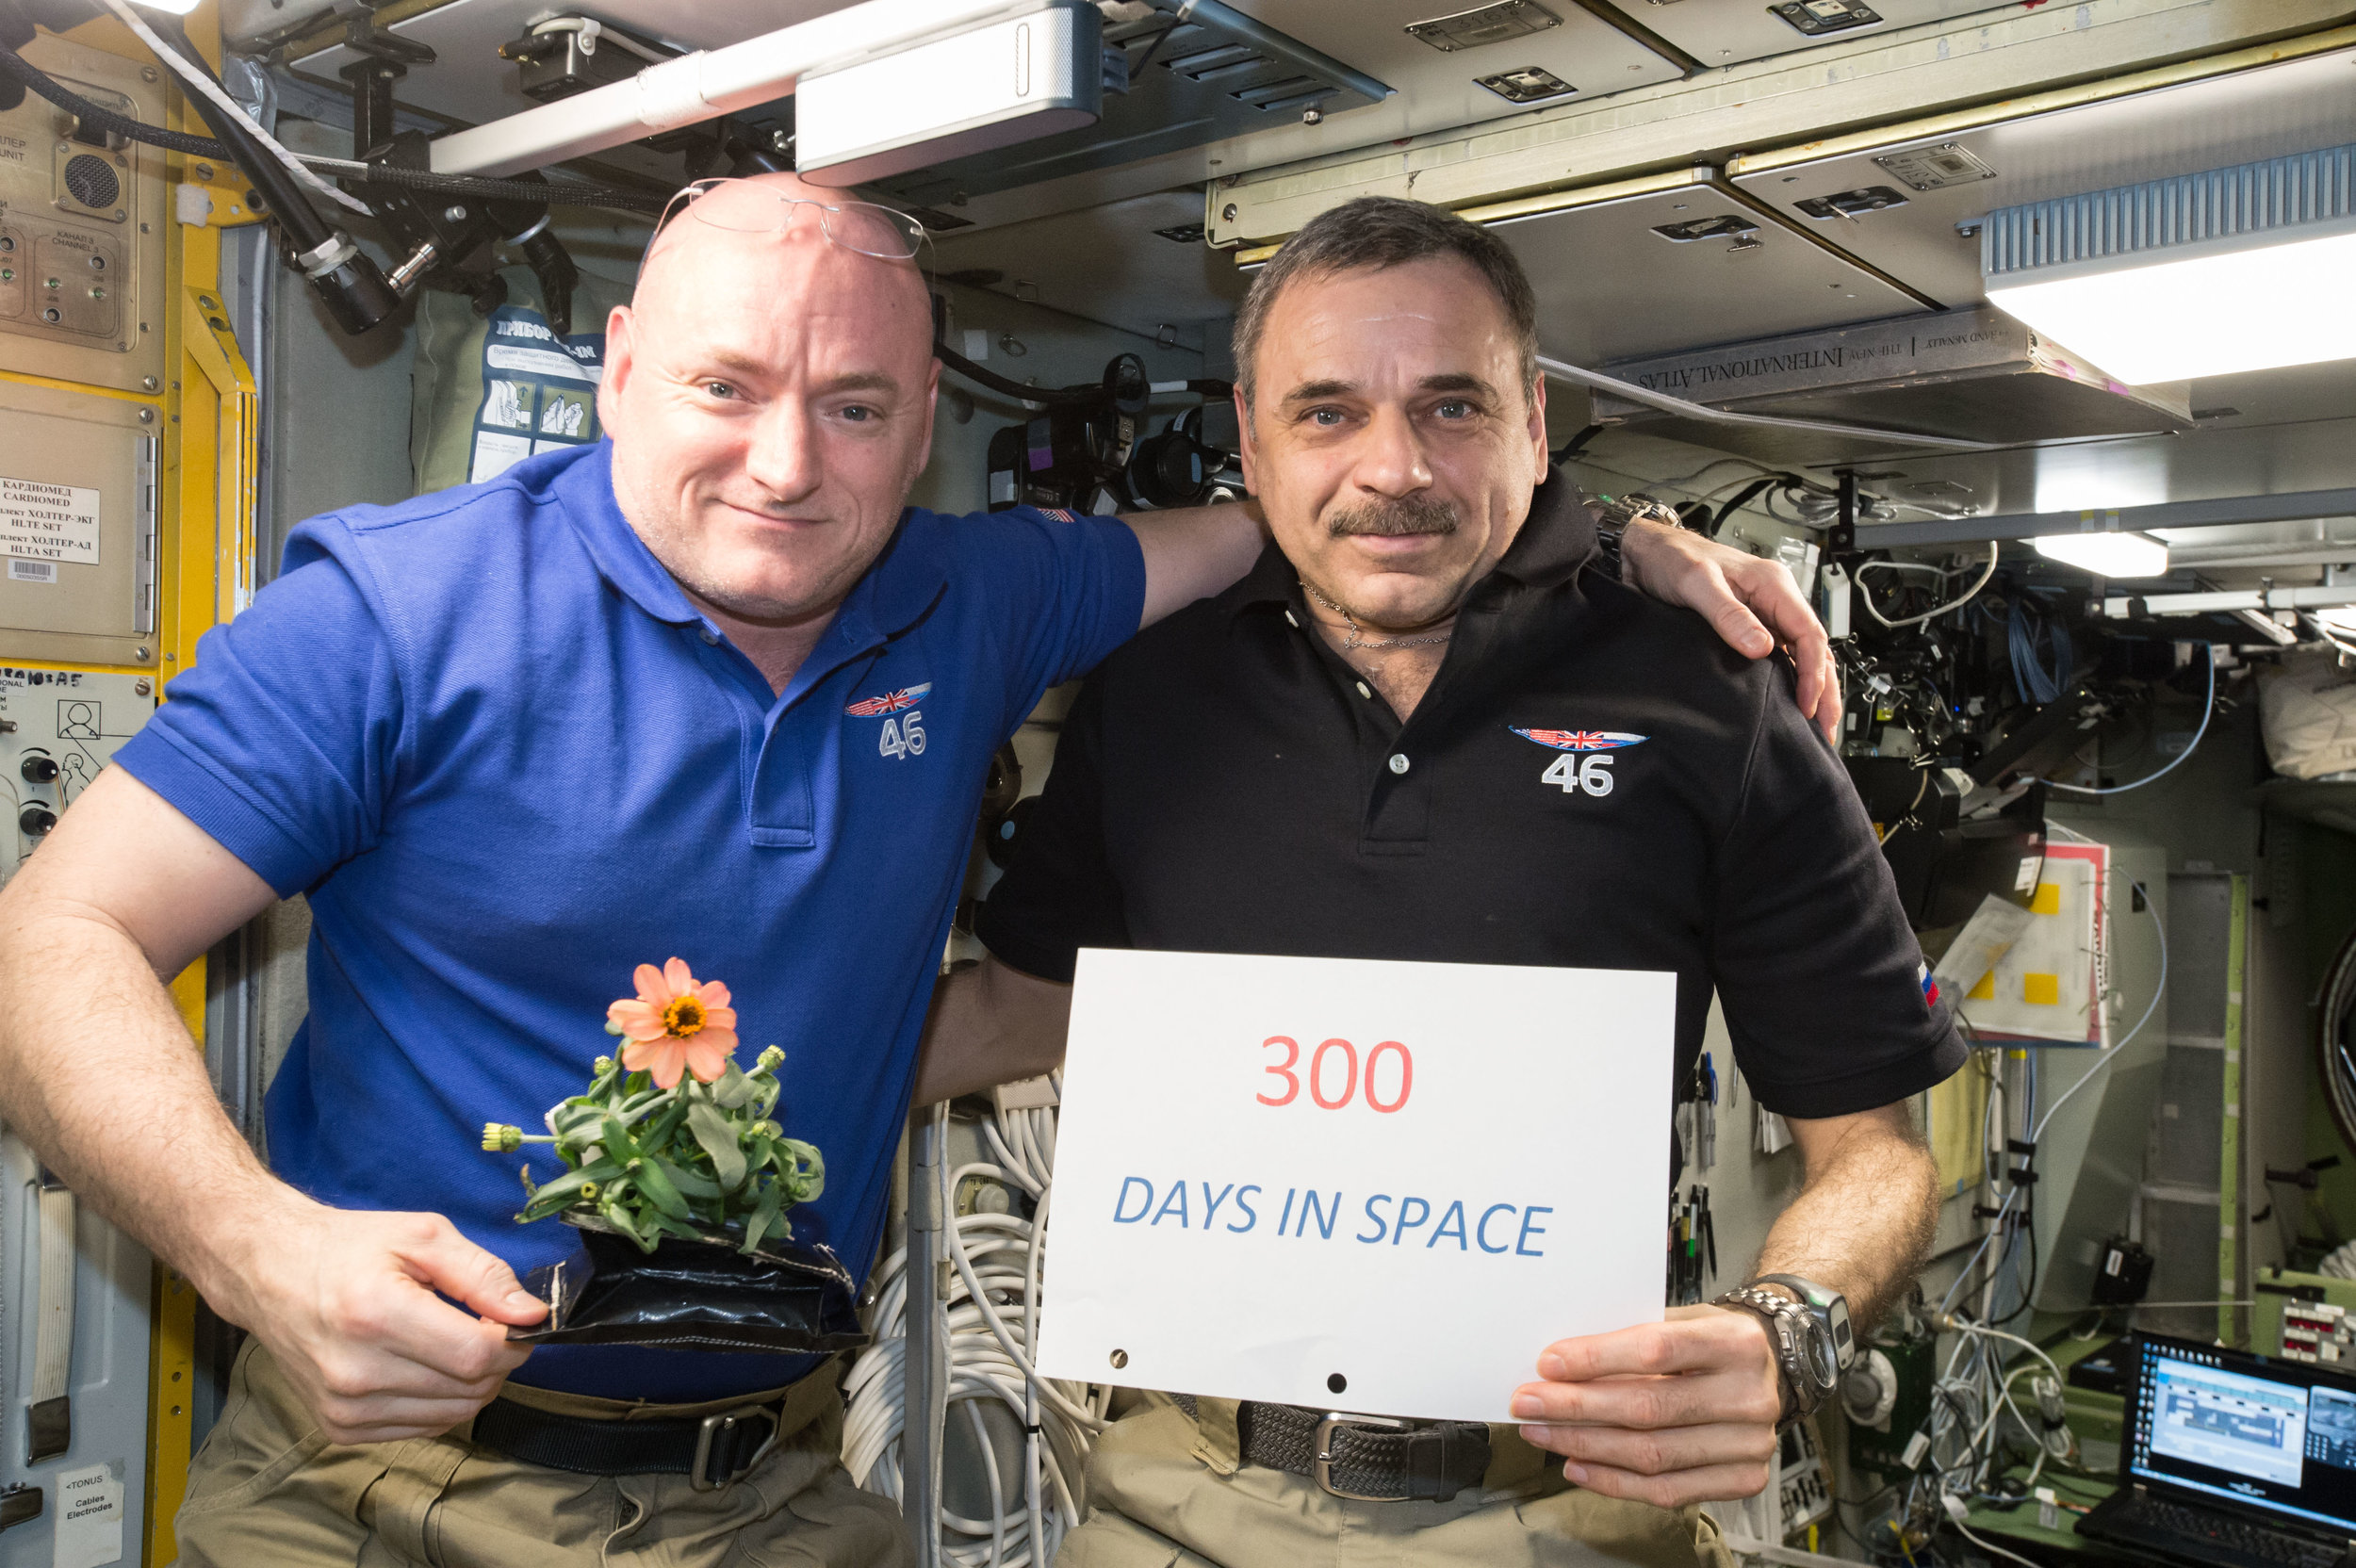 (01-22-2016) — One-year mission crew members Scott Kelly of NASA (left) and Mikhail Kornienko of Roscosmos (right) celebrated their 300th consecutive day in space on Jan. 21, 2016. Kelly is holding a zinnia grown in space as part of the Veggie experiment. Credits: NASA